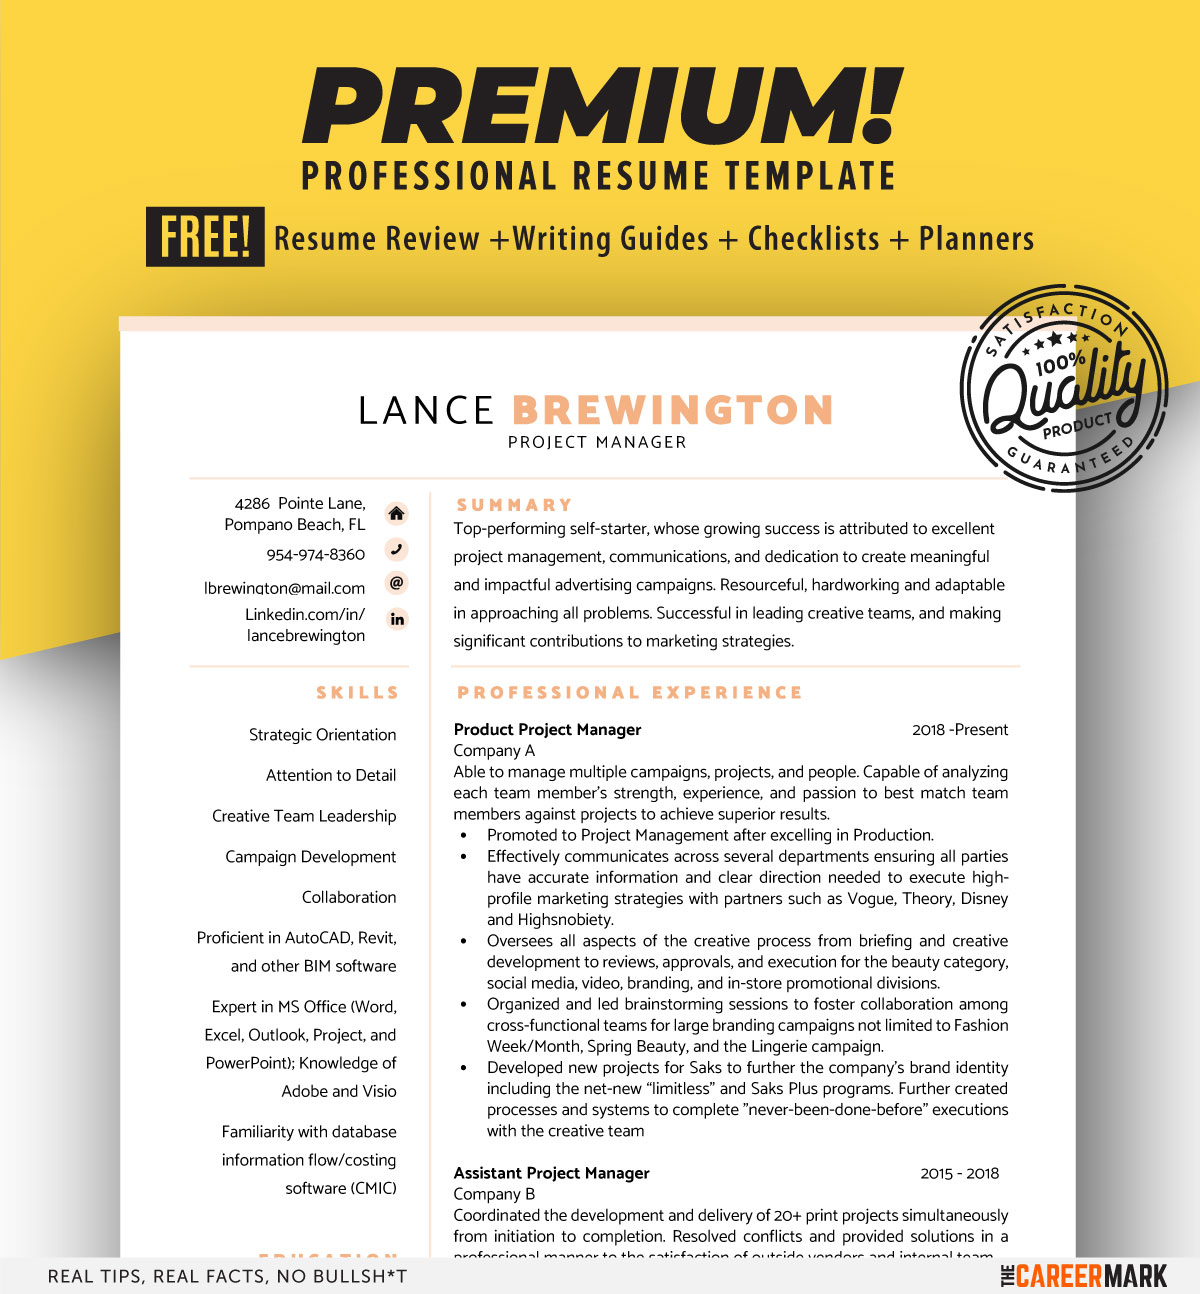 ATS friendly project manager resume template